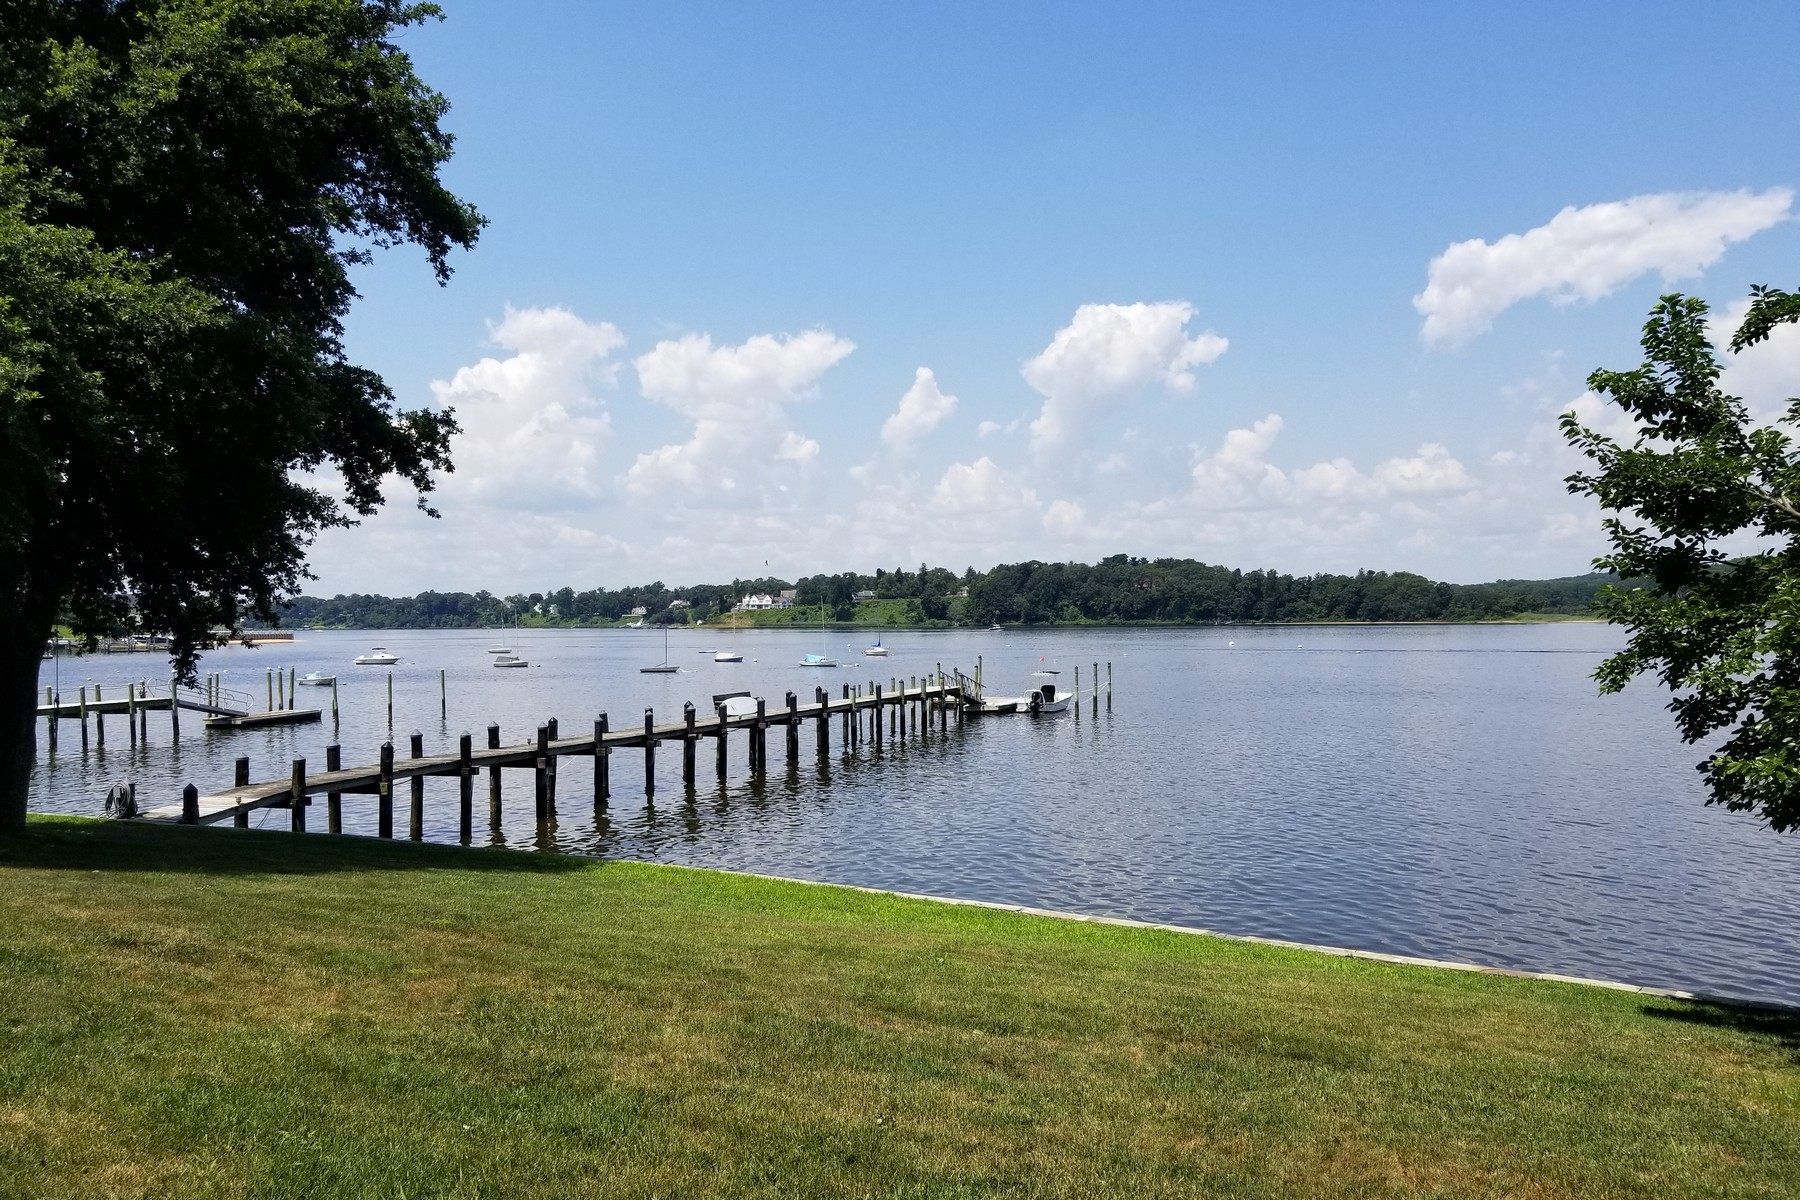 Land for Sale at Waterfront Bliss 81 Riverlawn Drive, B - RL Fair Haven, New Jersey 07704 United States